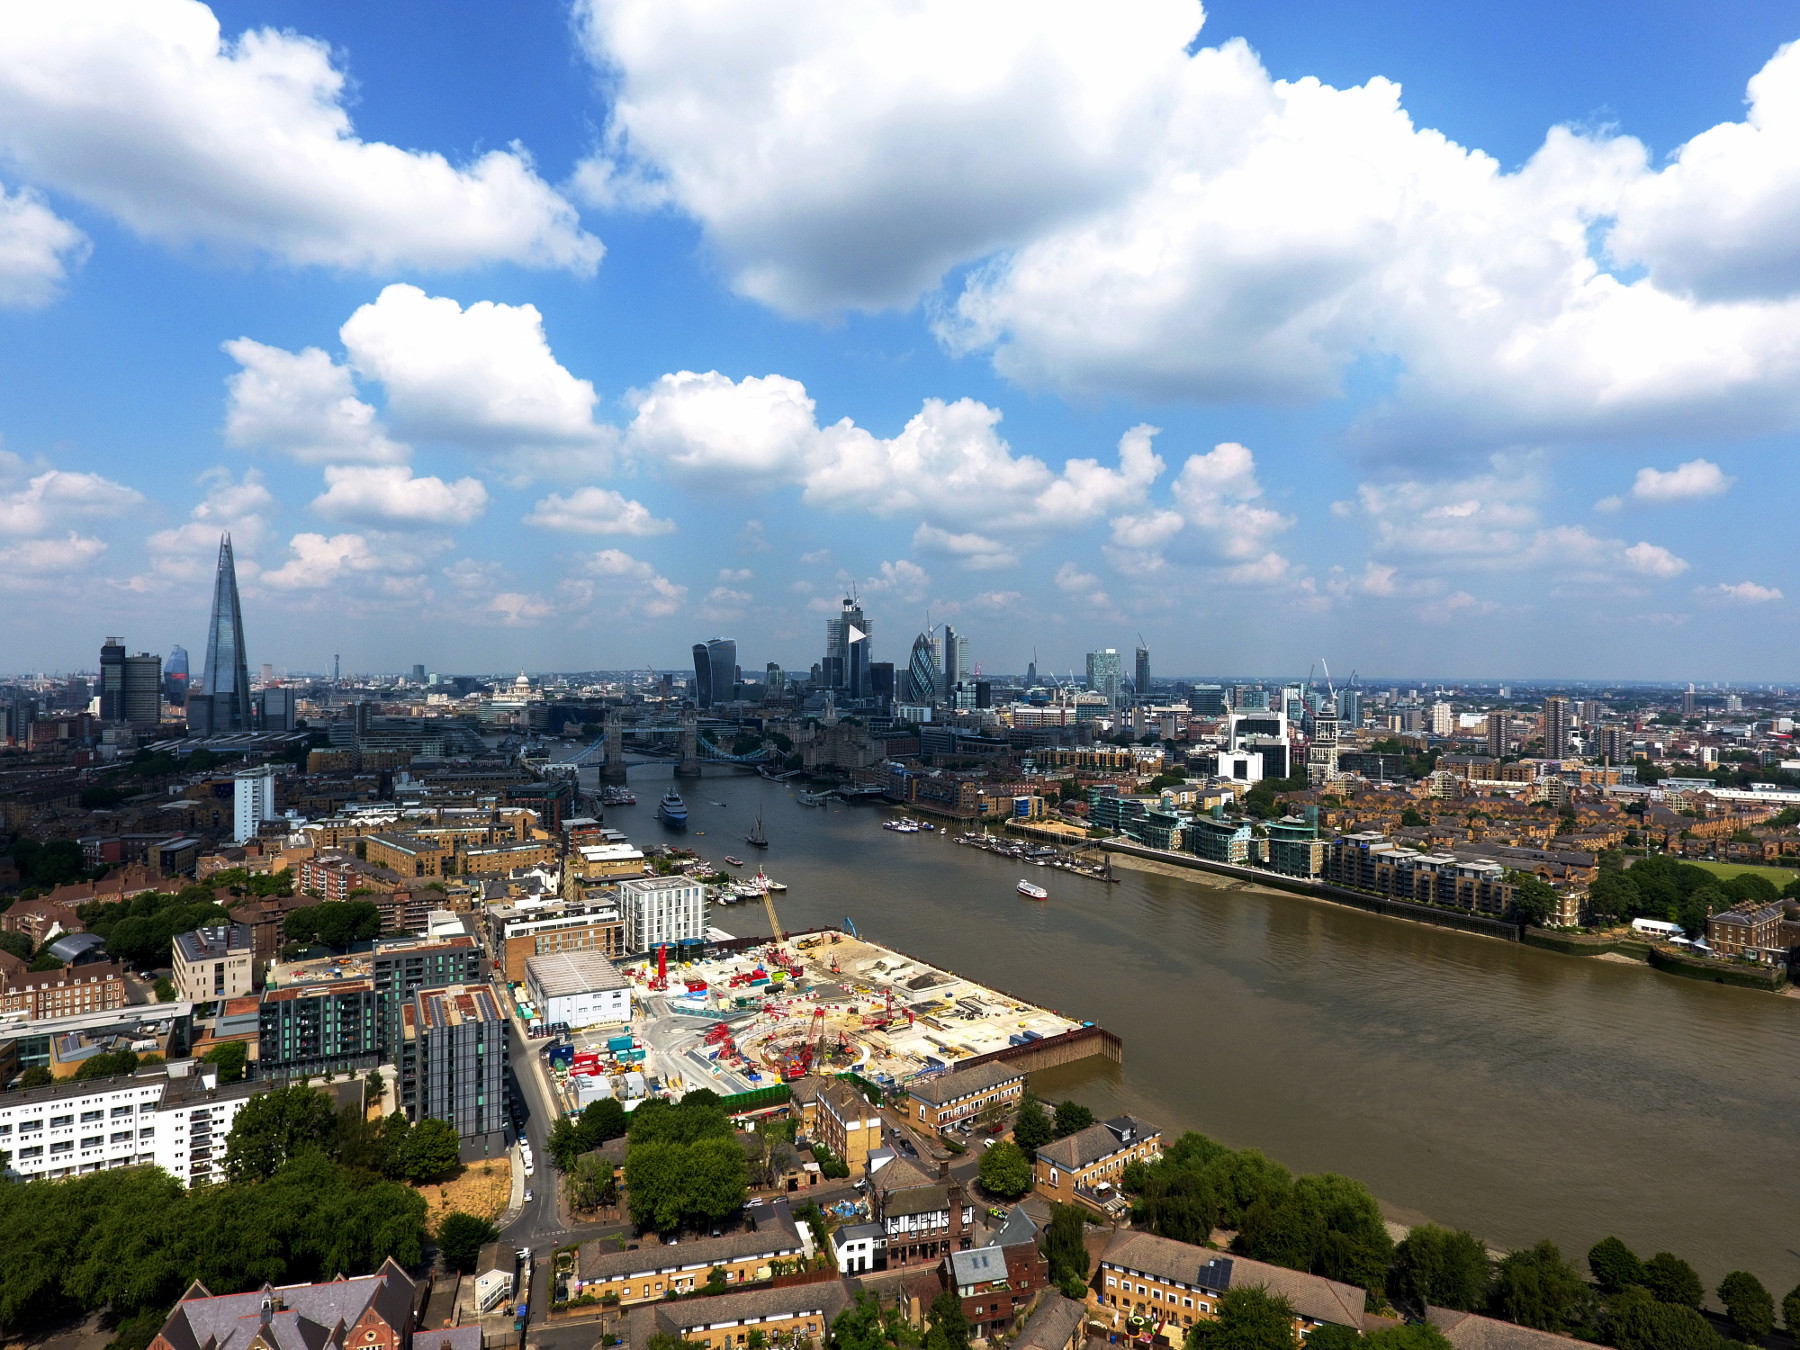 An aerial view of the London skyline on a bright sunny day, overlooking the river Thames from Southwark.